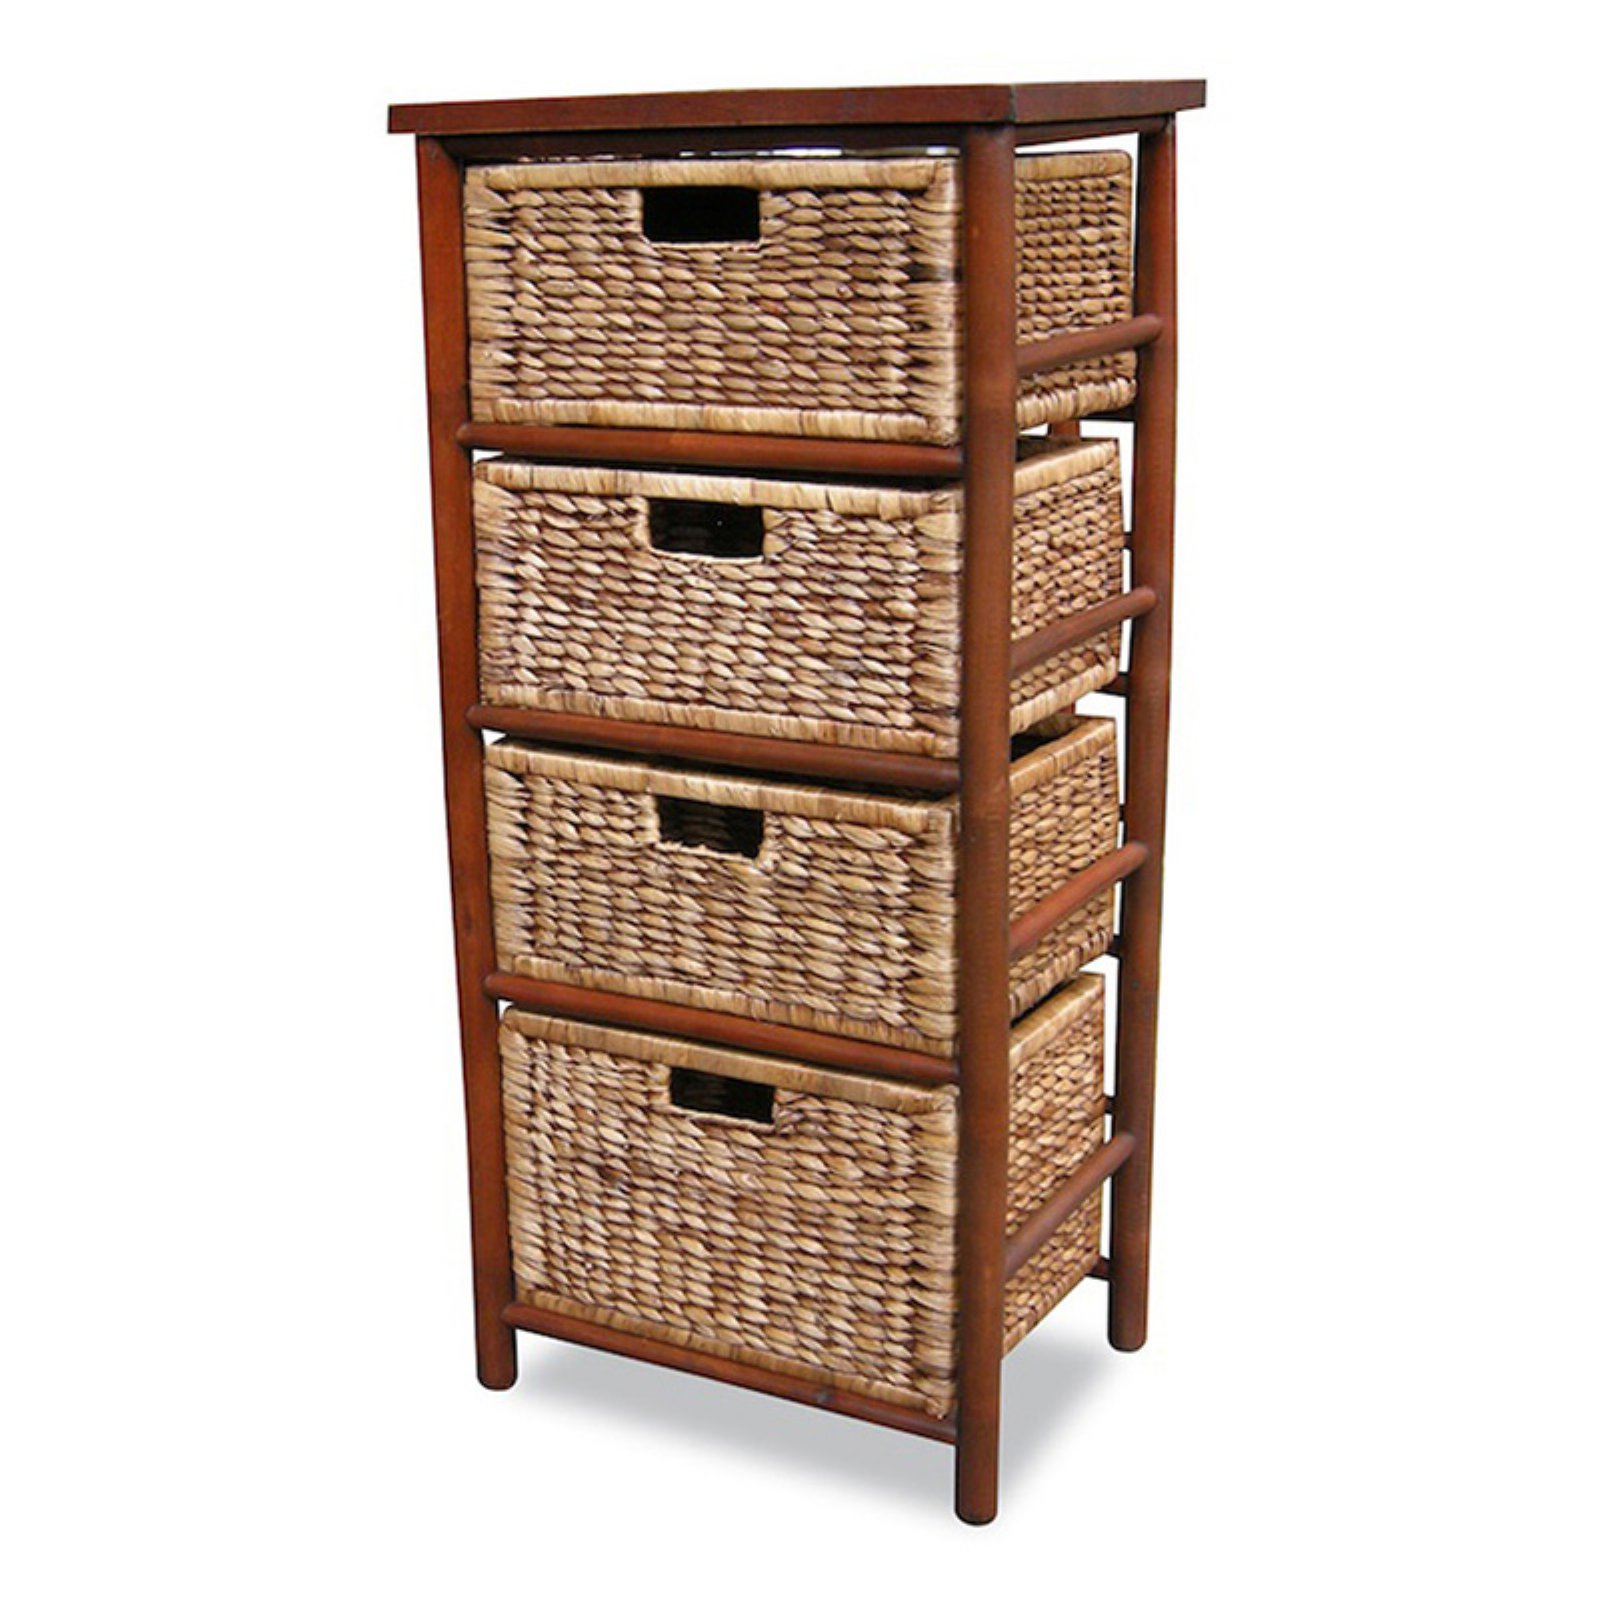 Heather Ann Creations Kala 4 Drawer Open Sided Bamboo Storage Cabinet